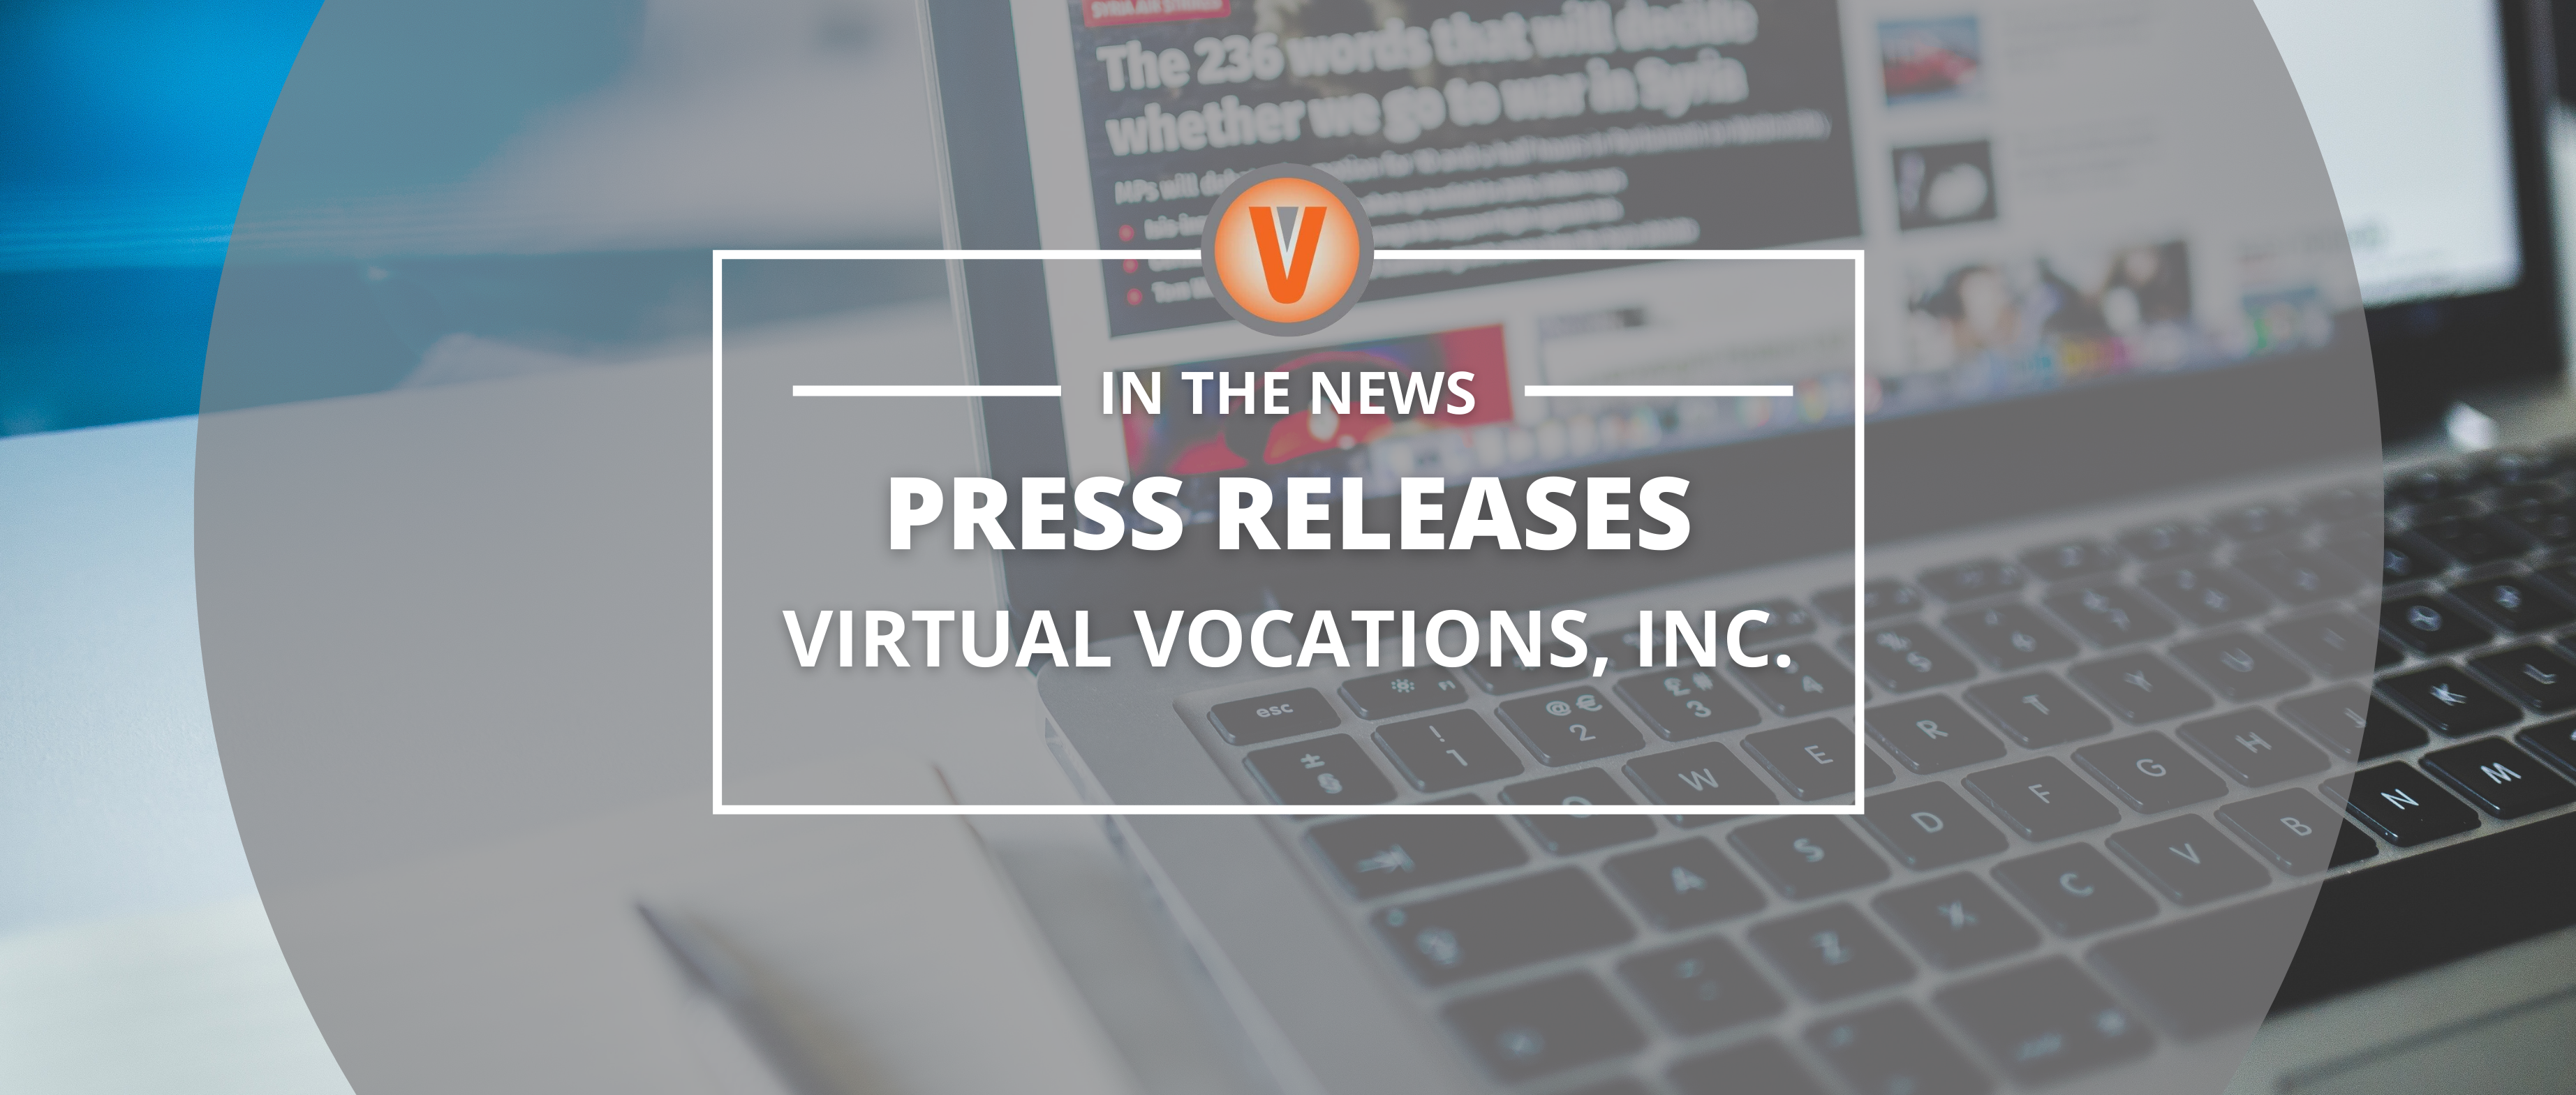 Virtual Vocations Press Releases